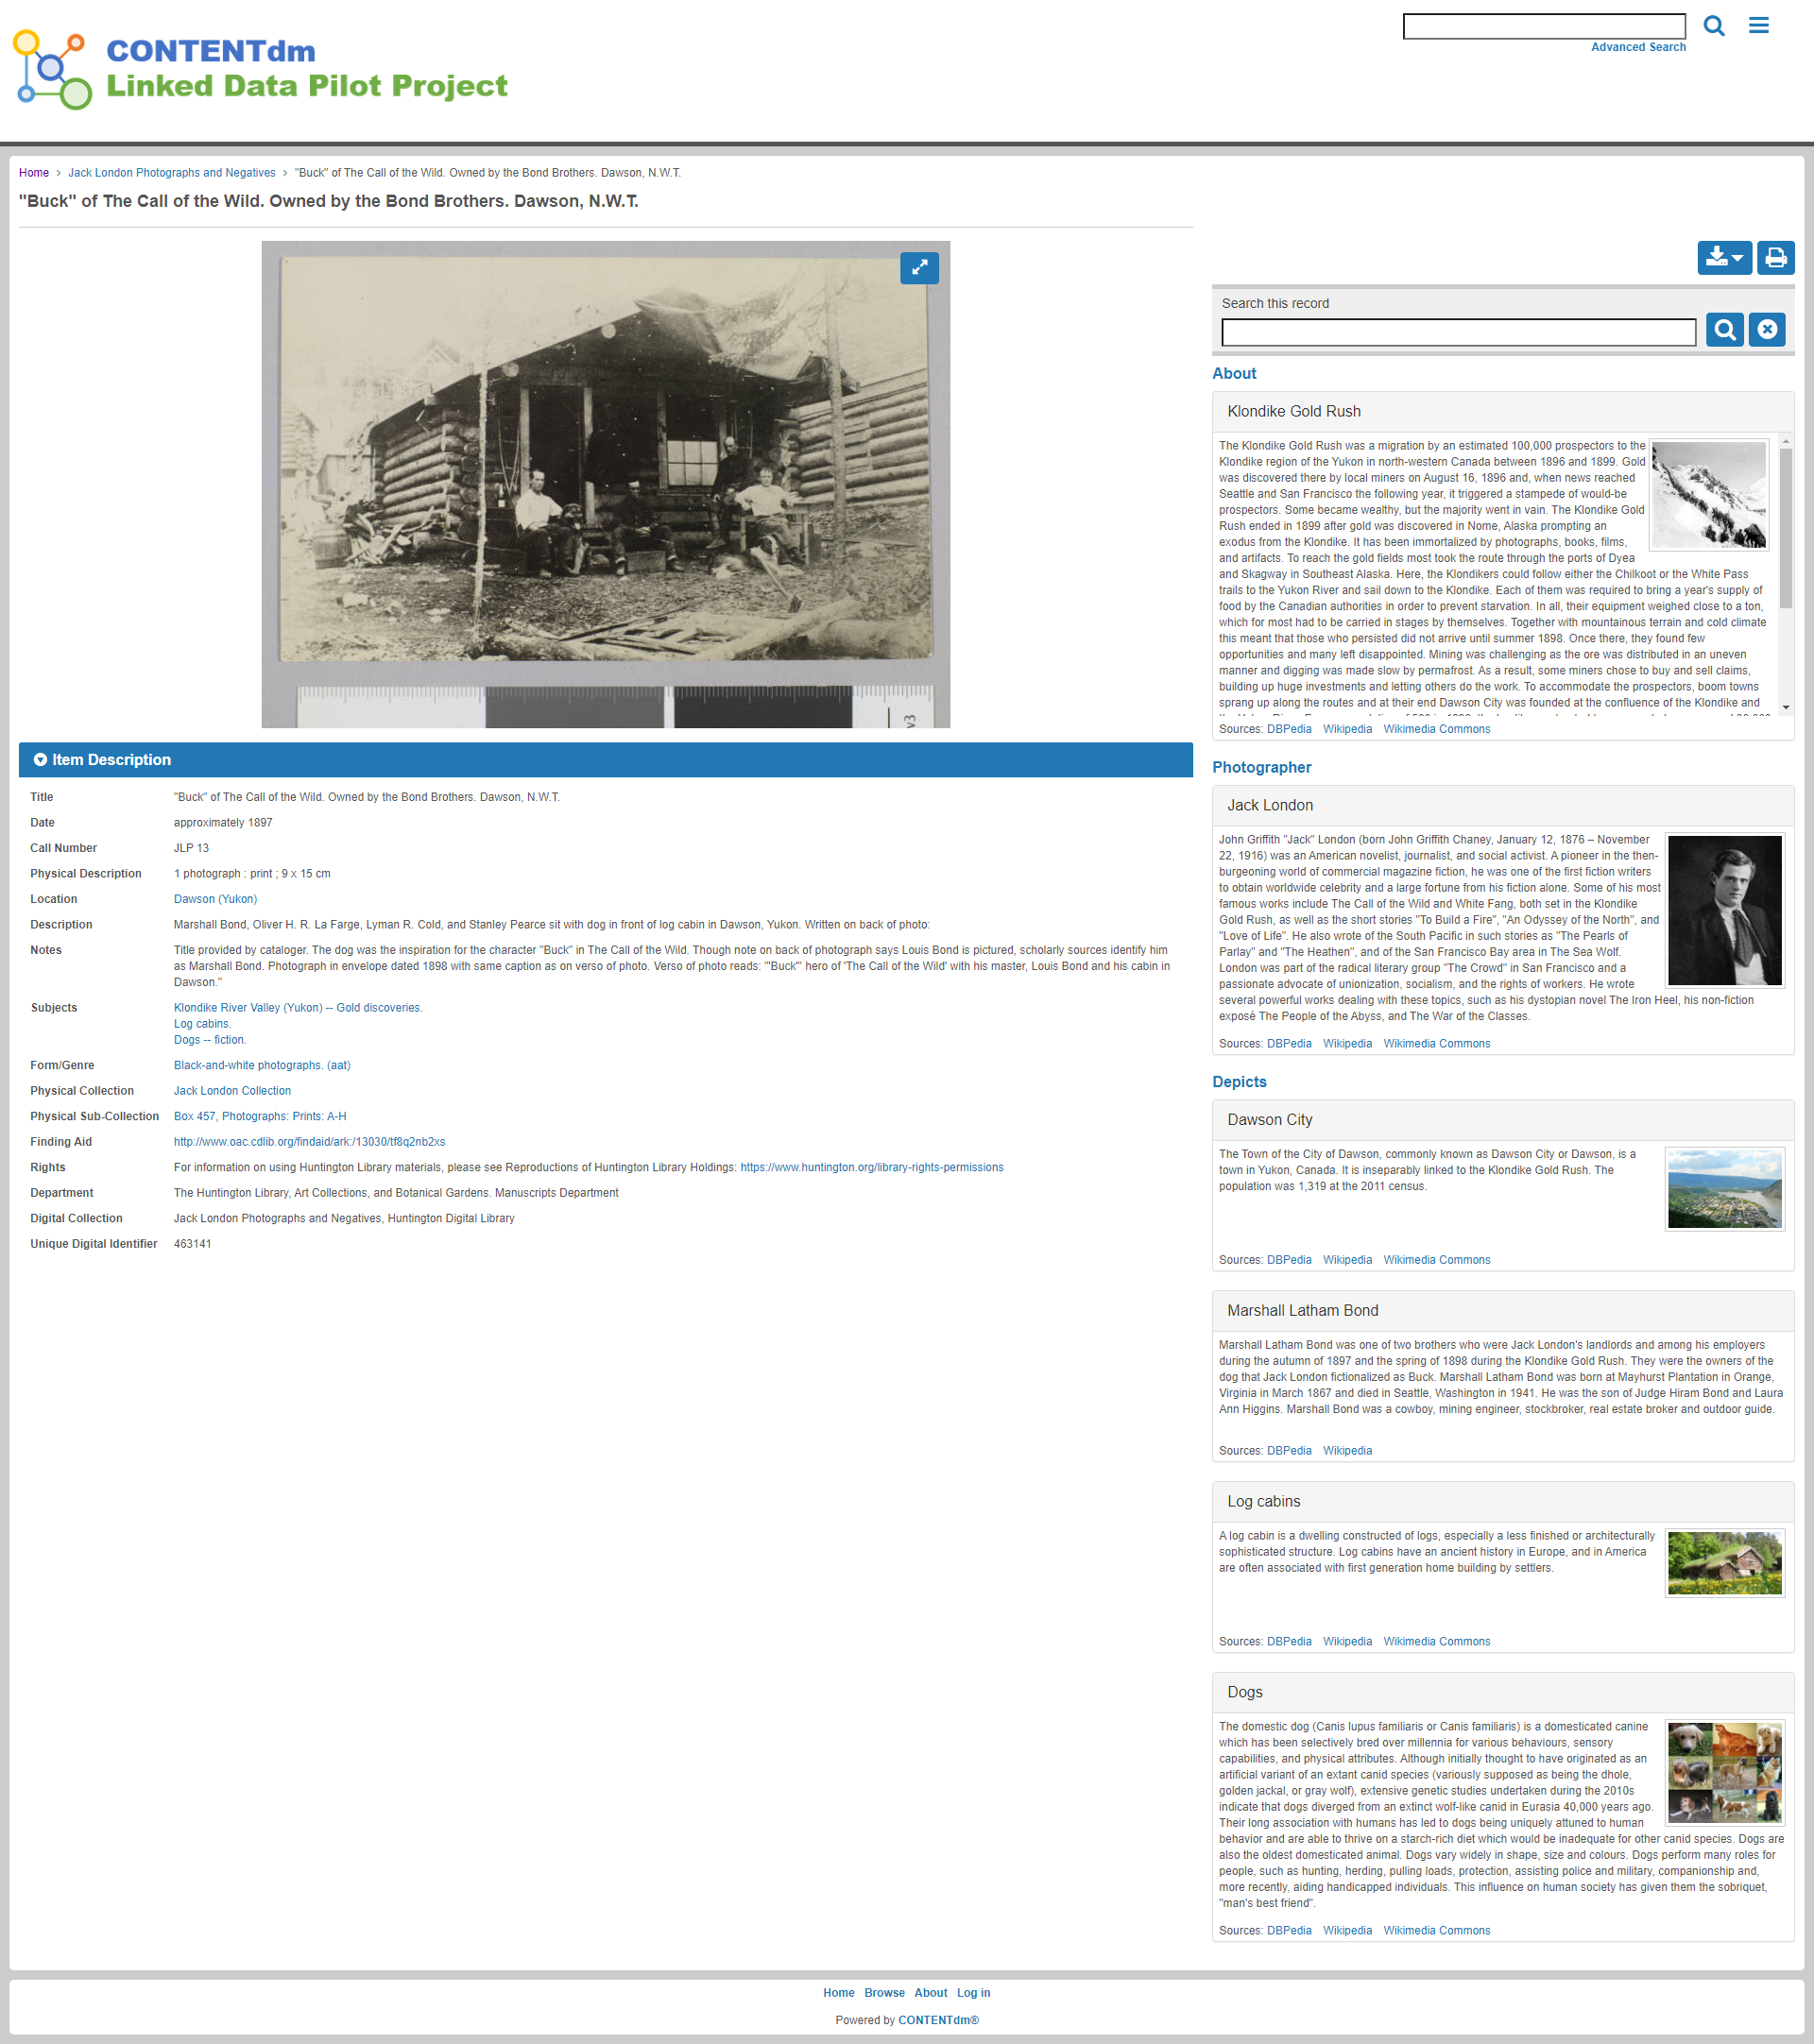 Prototype interface from CONTENTdm Linked Data Pilot Explorer project showing collection image with right-hand knowledge panel listing contextual intormation such as historical events, people, places and things